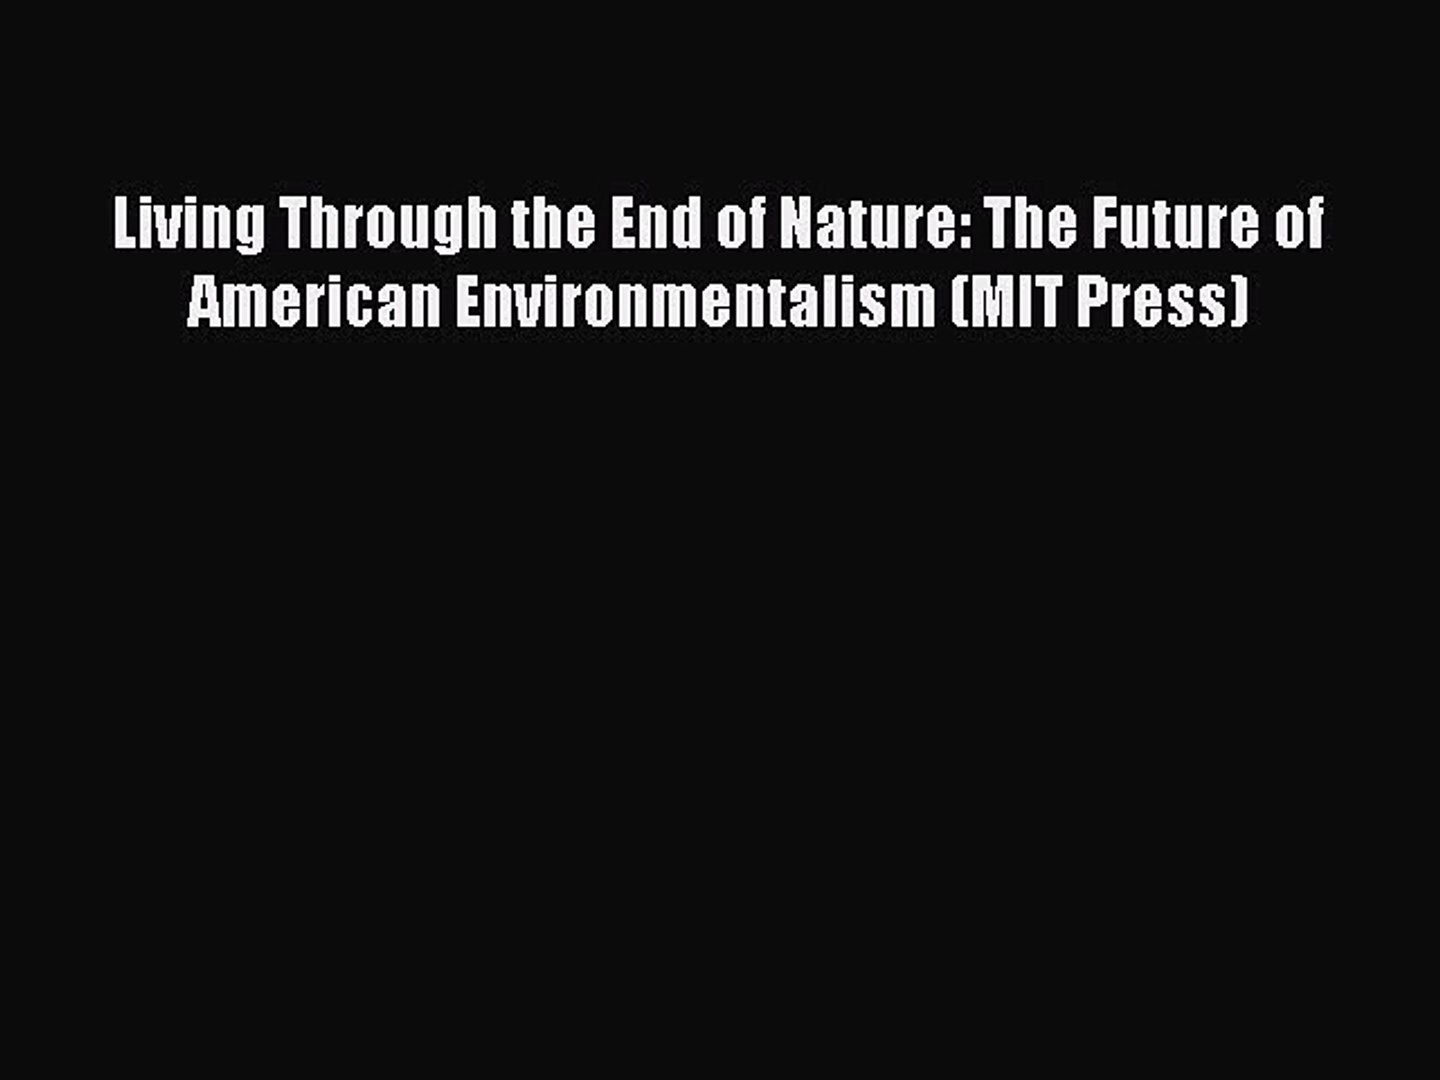 Living Through the End of Nature: The Future of American Environmentalism (MIT Press)